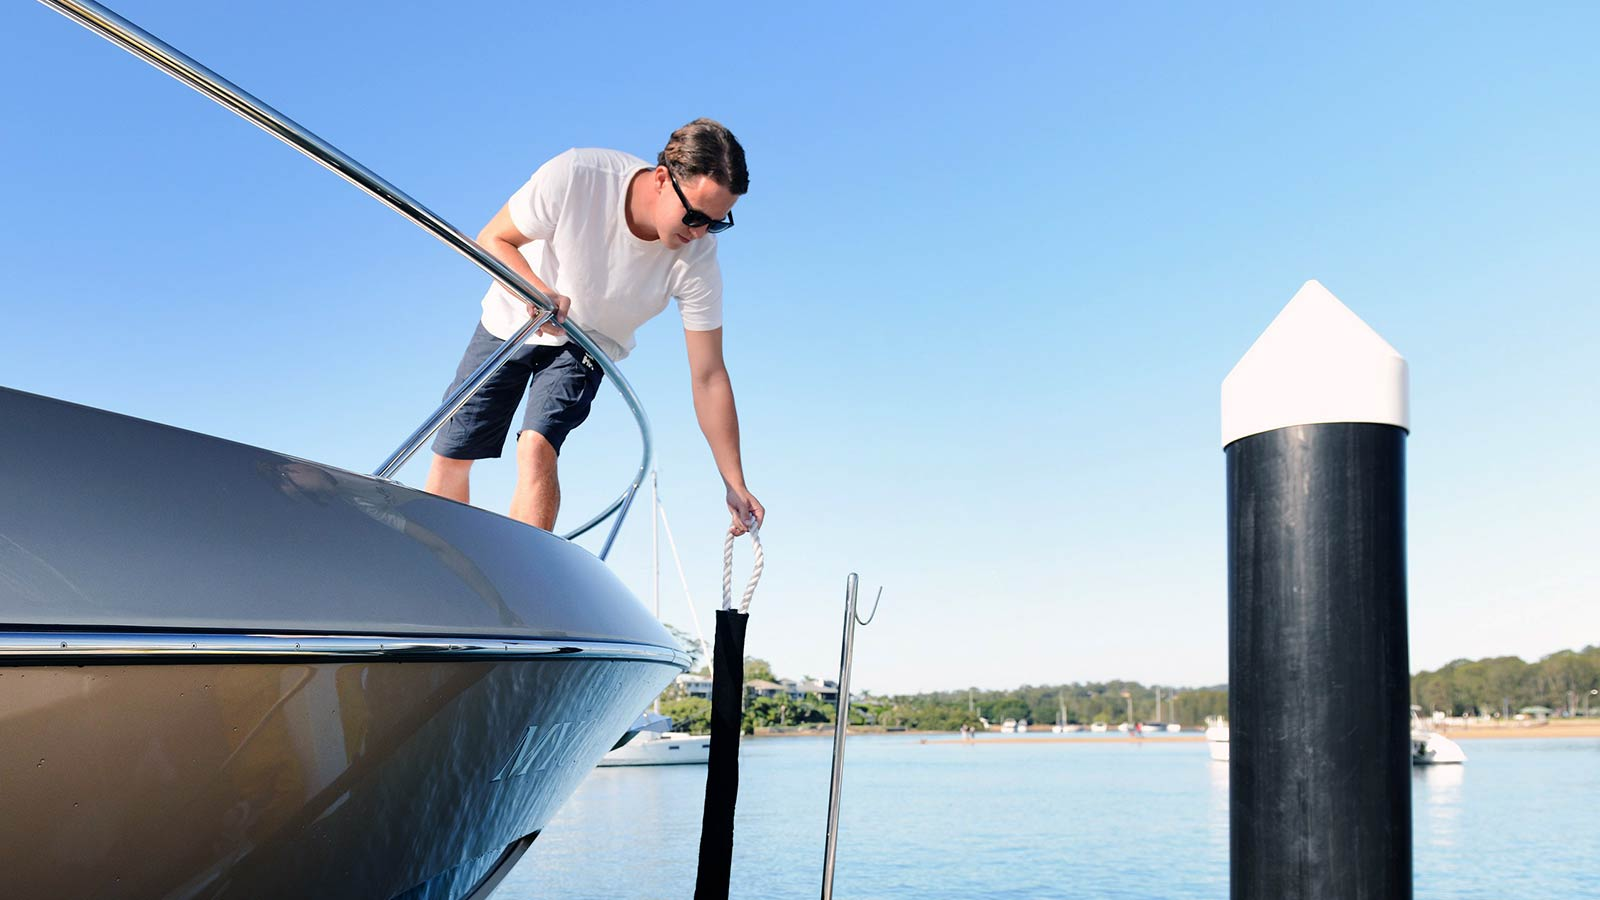 We use and recommend Australian Jetty Fenders equipment for your motor yacht in Sydney